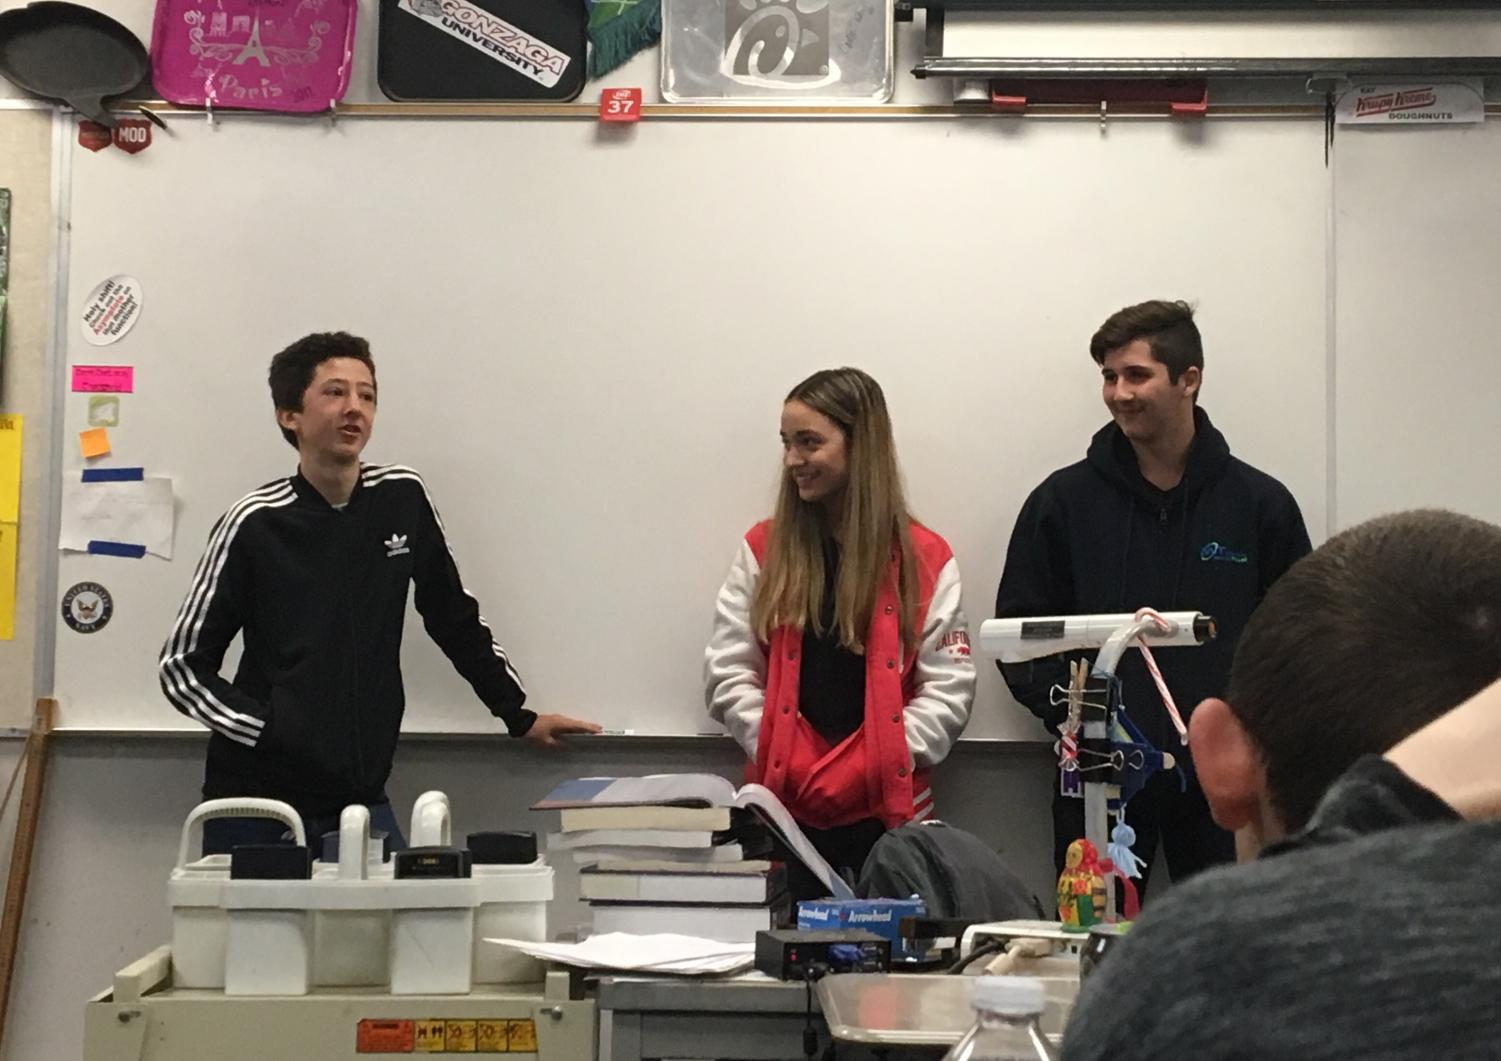 Welcome to class: Three Australian exchange students are brought to the attention of Mr. Flanders' second period class. Madilyn Ridgeway, Reece Ryan and Konnor Furber were given the assignment of telling the American students about their 'lifestyle'. In the back of the classroom, hosts Mitchell Hoffman and Sydney Peterson are chuckling watching their newfound friends struggle under the pressure.